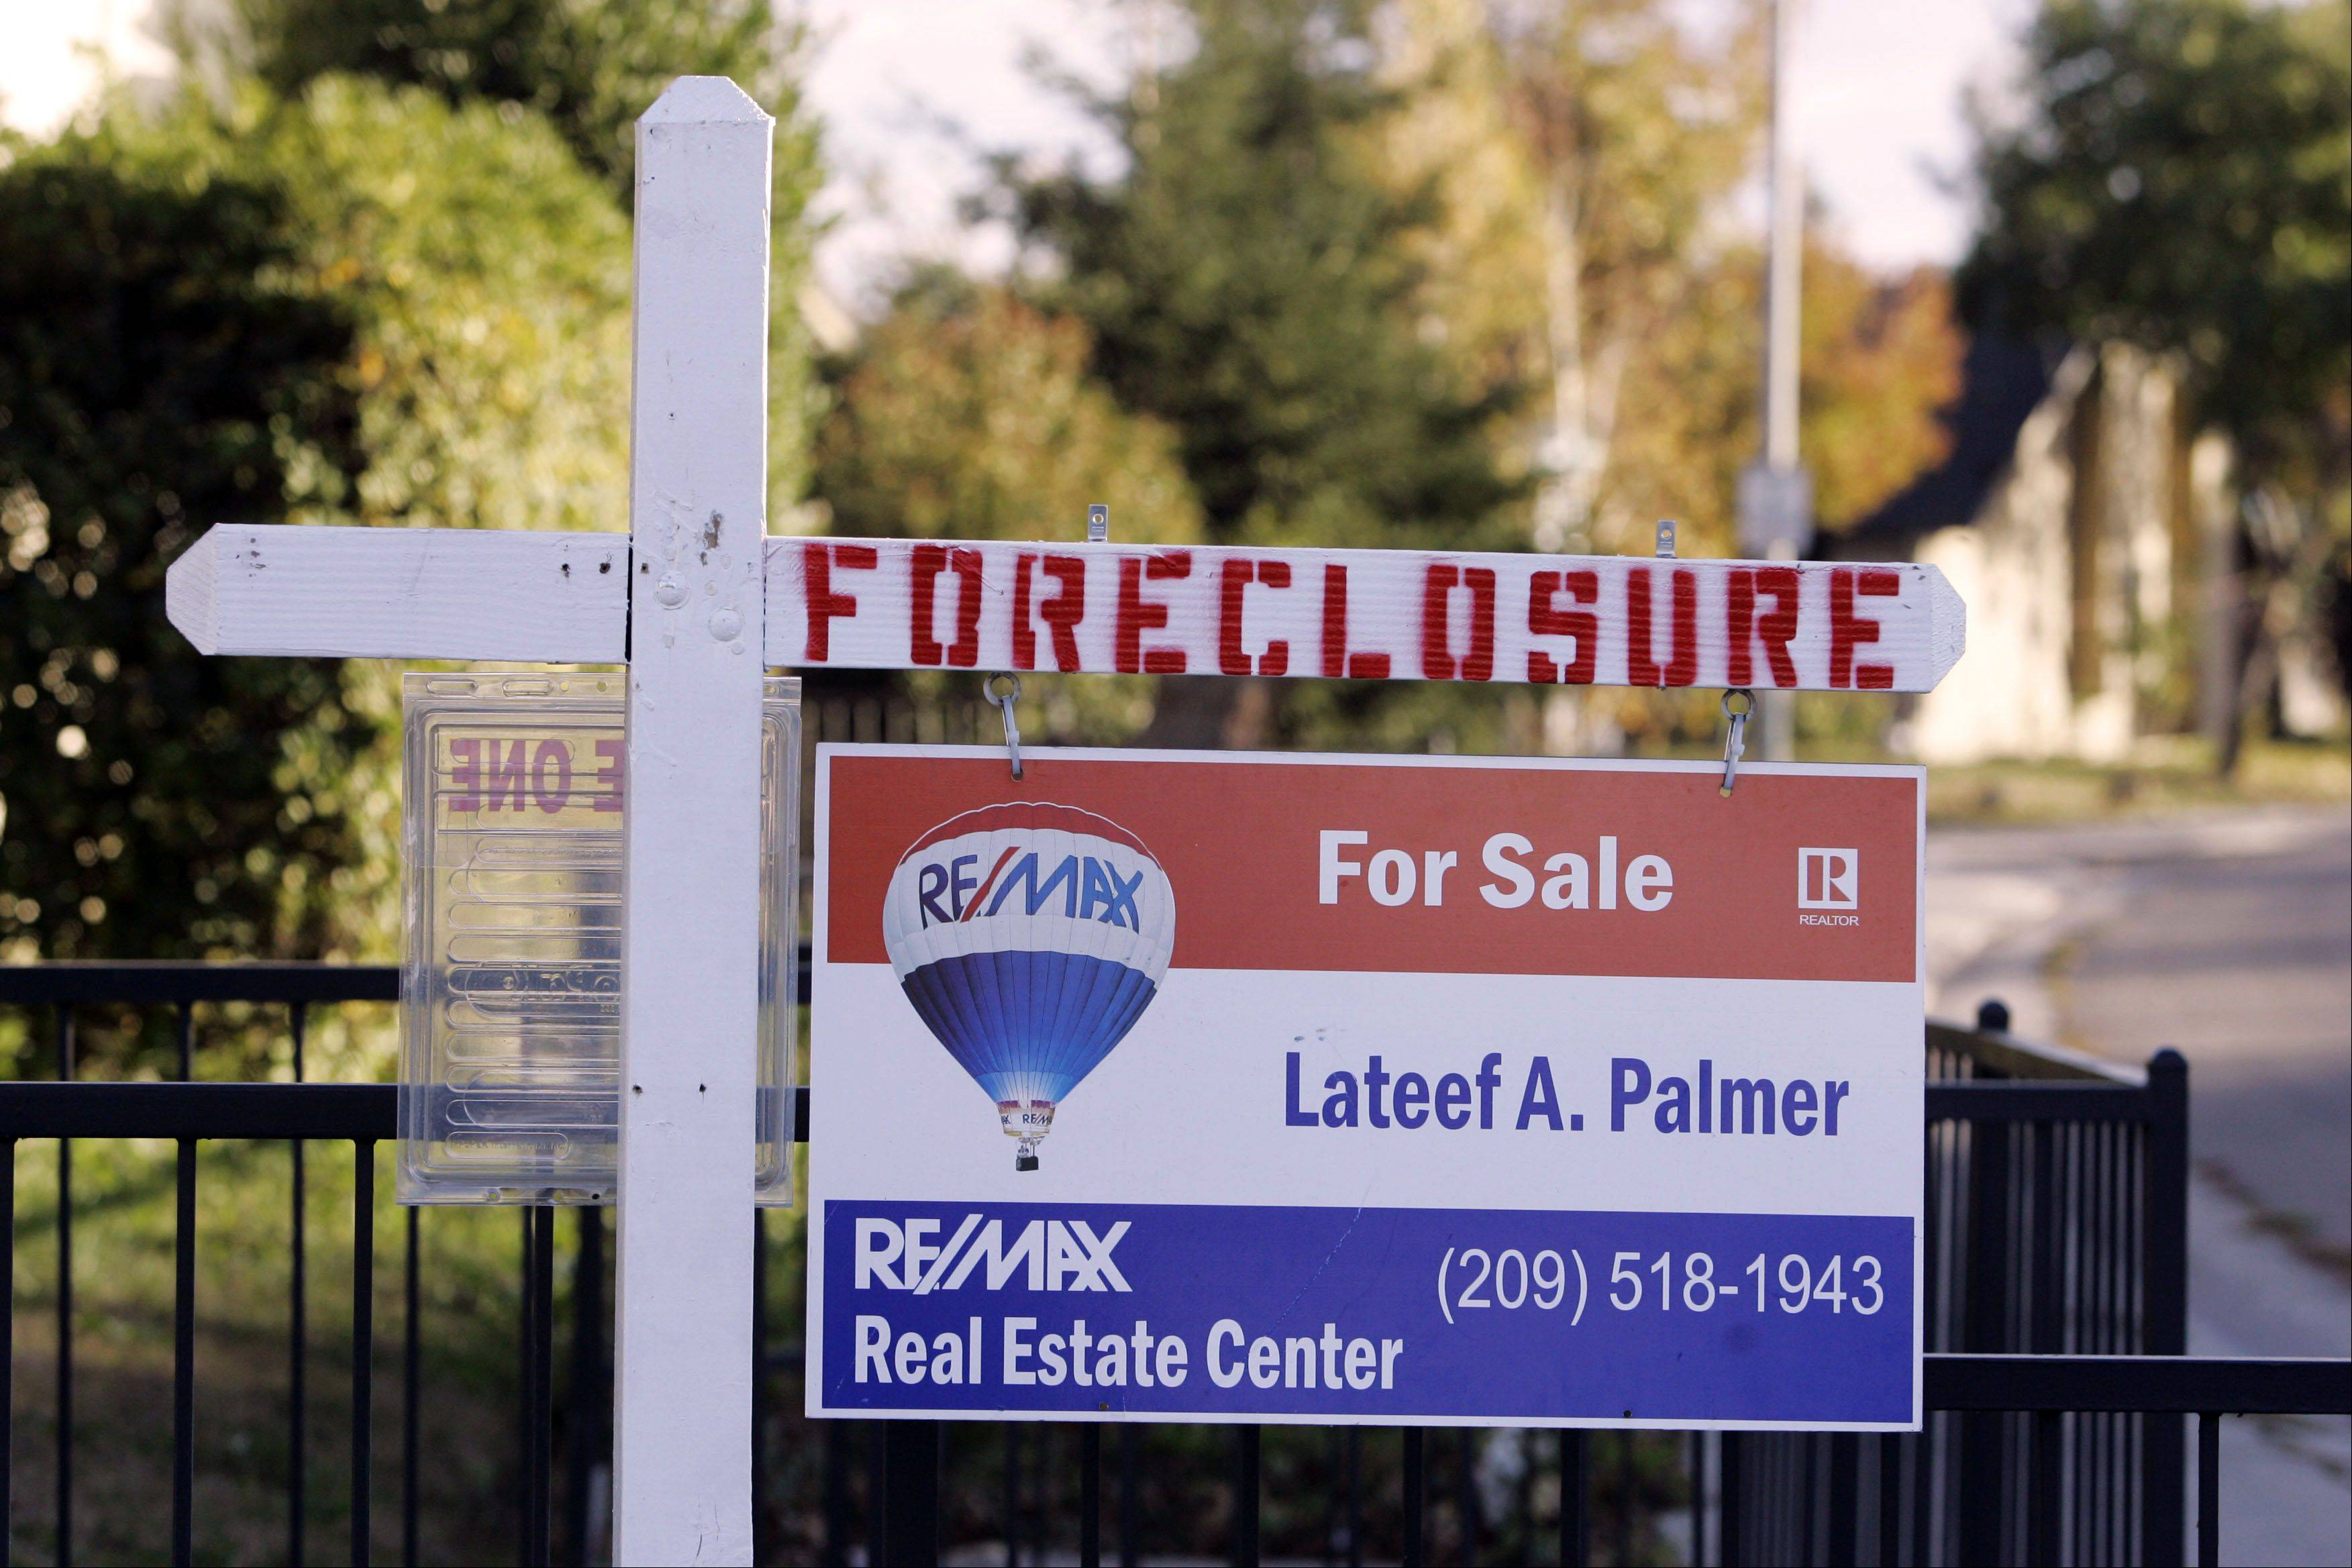 U.S. foreclosure filings dropped to a five-year low in September as fewer homes were on track to be seized by lenders. It was the second-consecutive monthly decline in filings, although there remains a sharp divergence along state lines, according to a report Thursday by foreclosure listing firm RealtyTrac Inc.